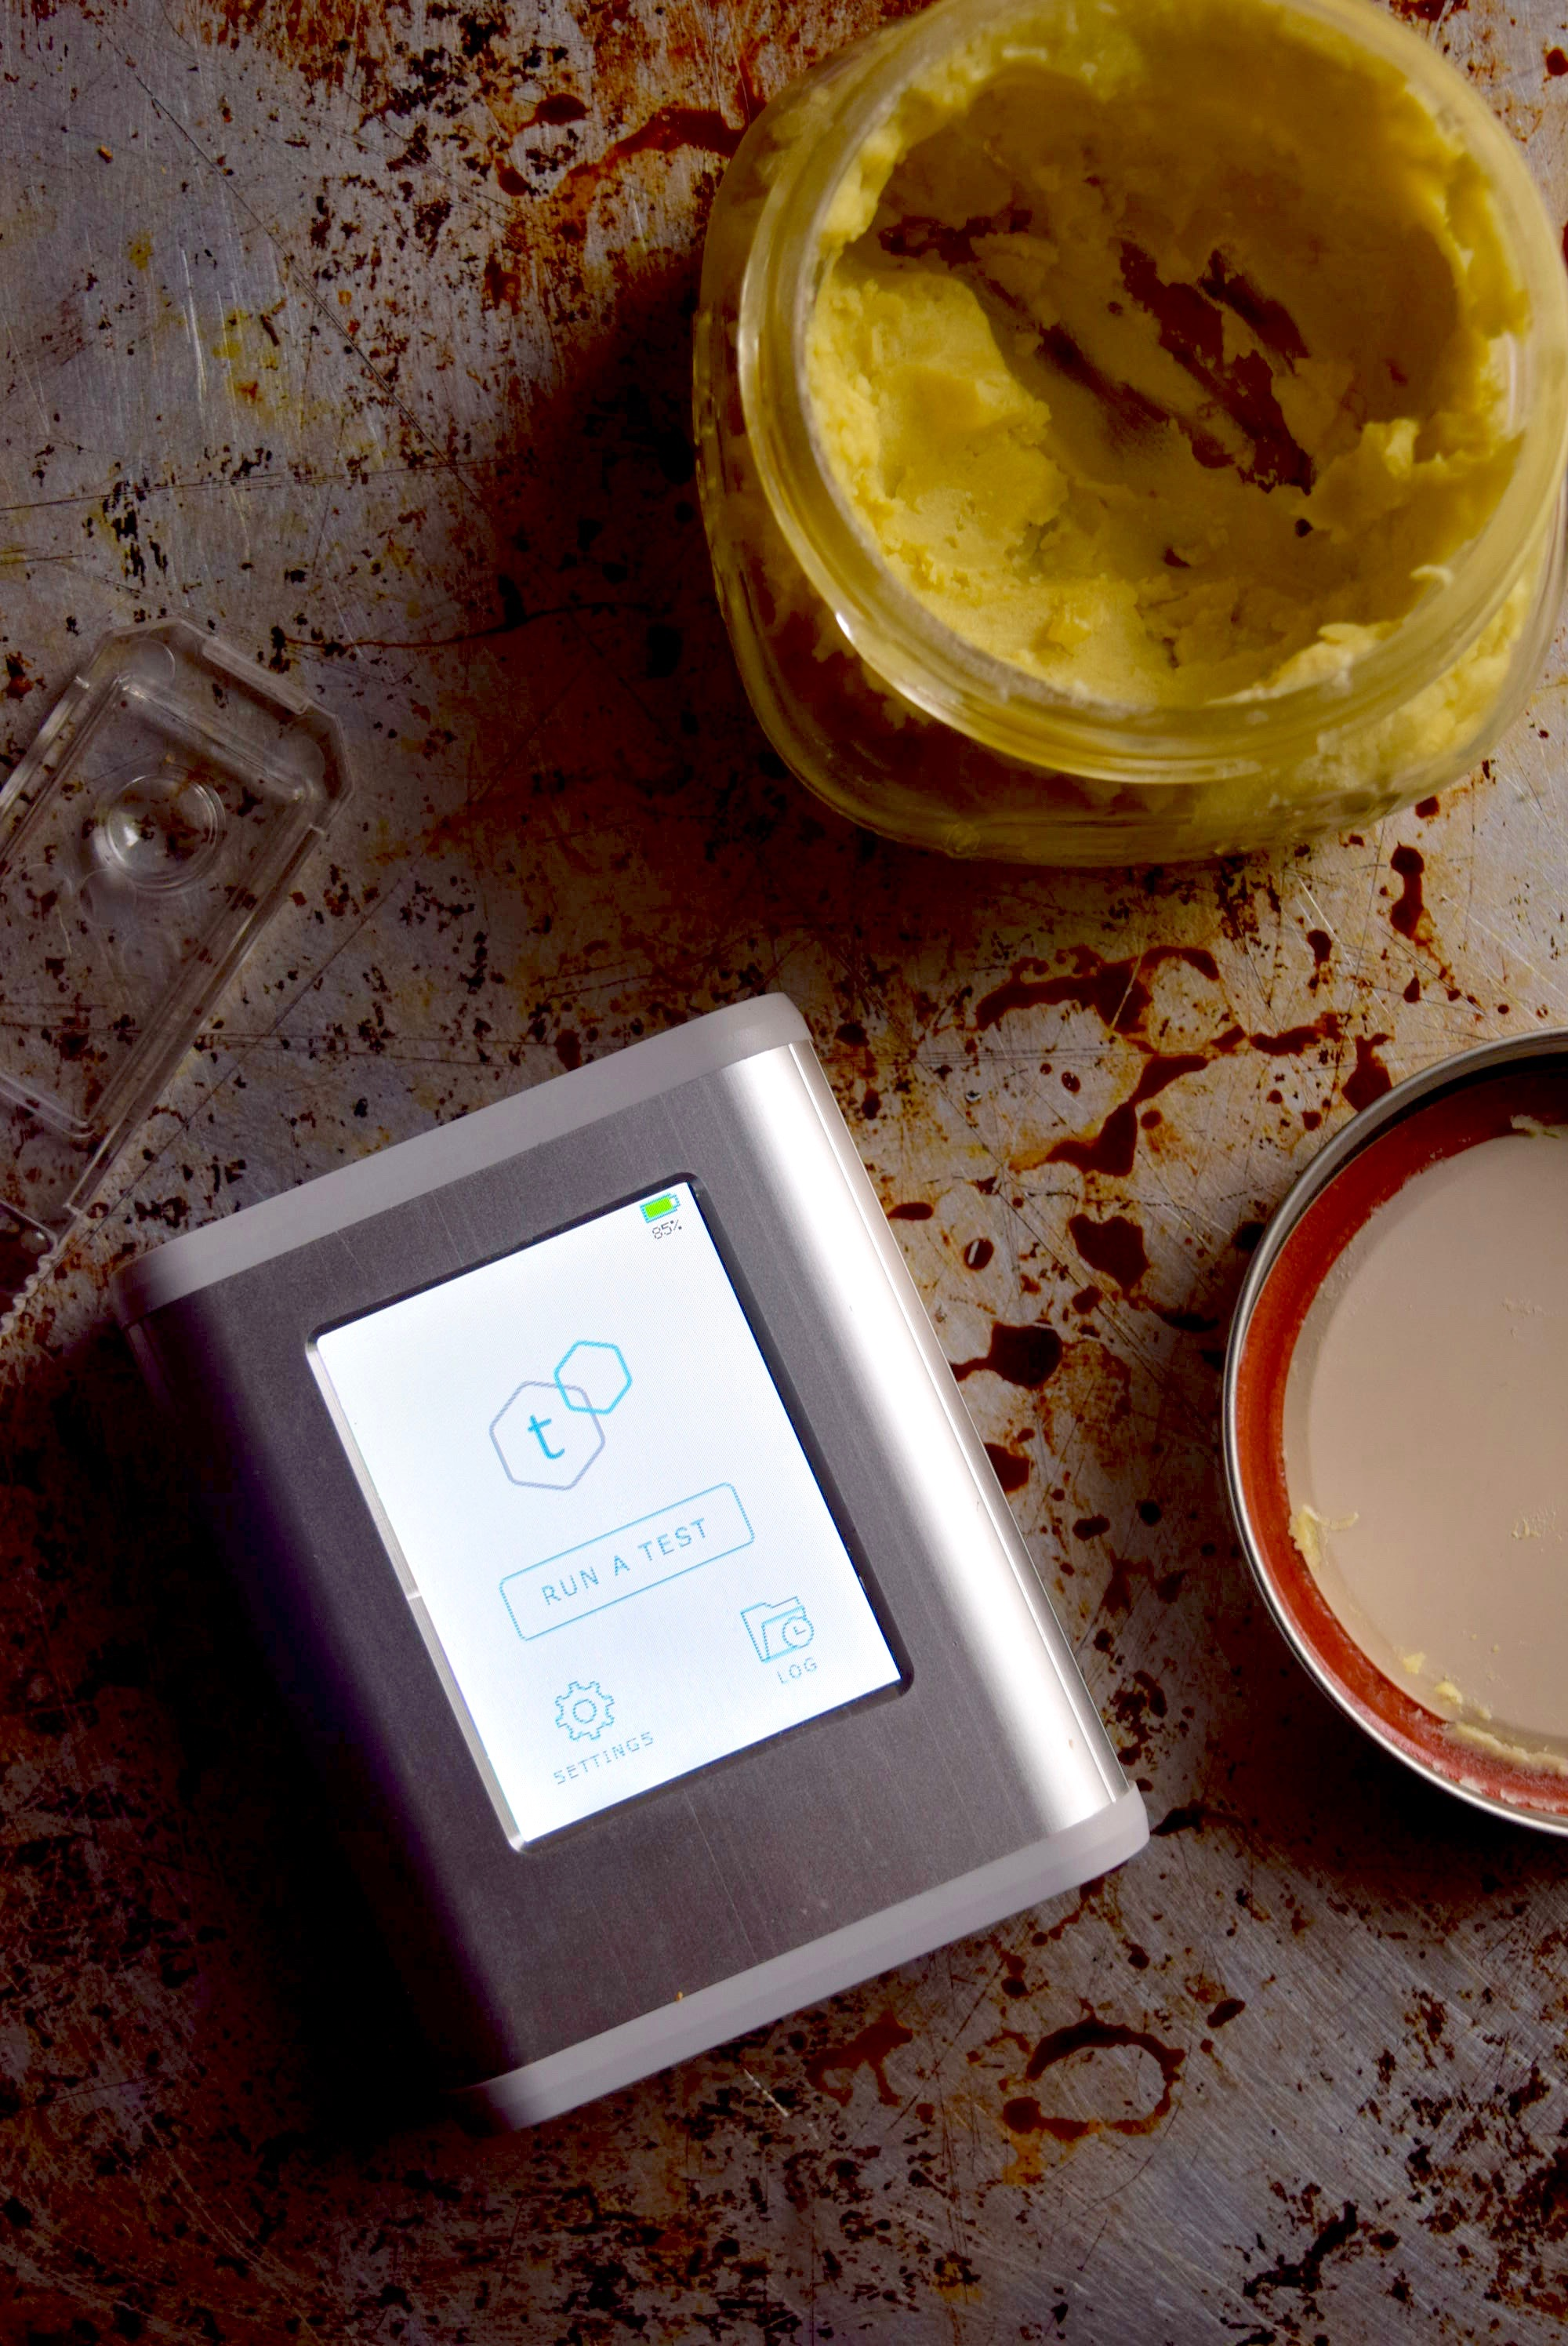 tCheck: a home cannabinoid test kit for finding the right dose